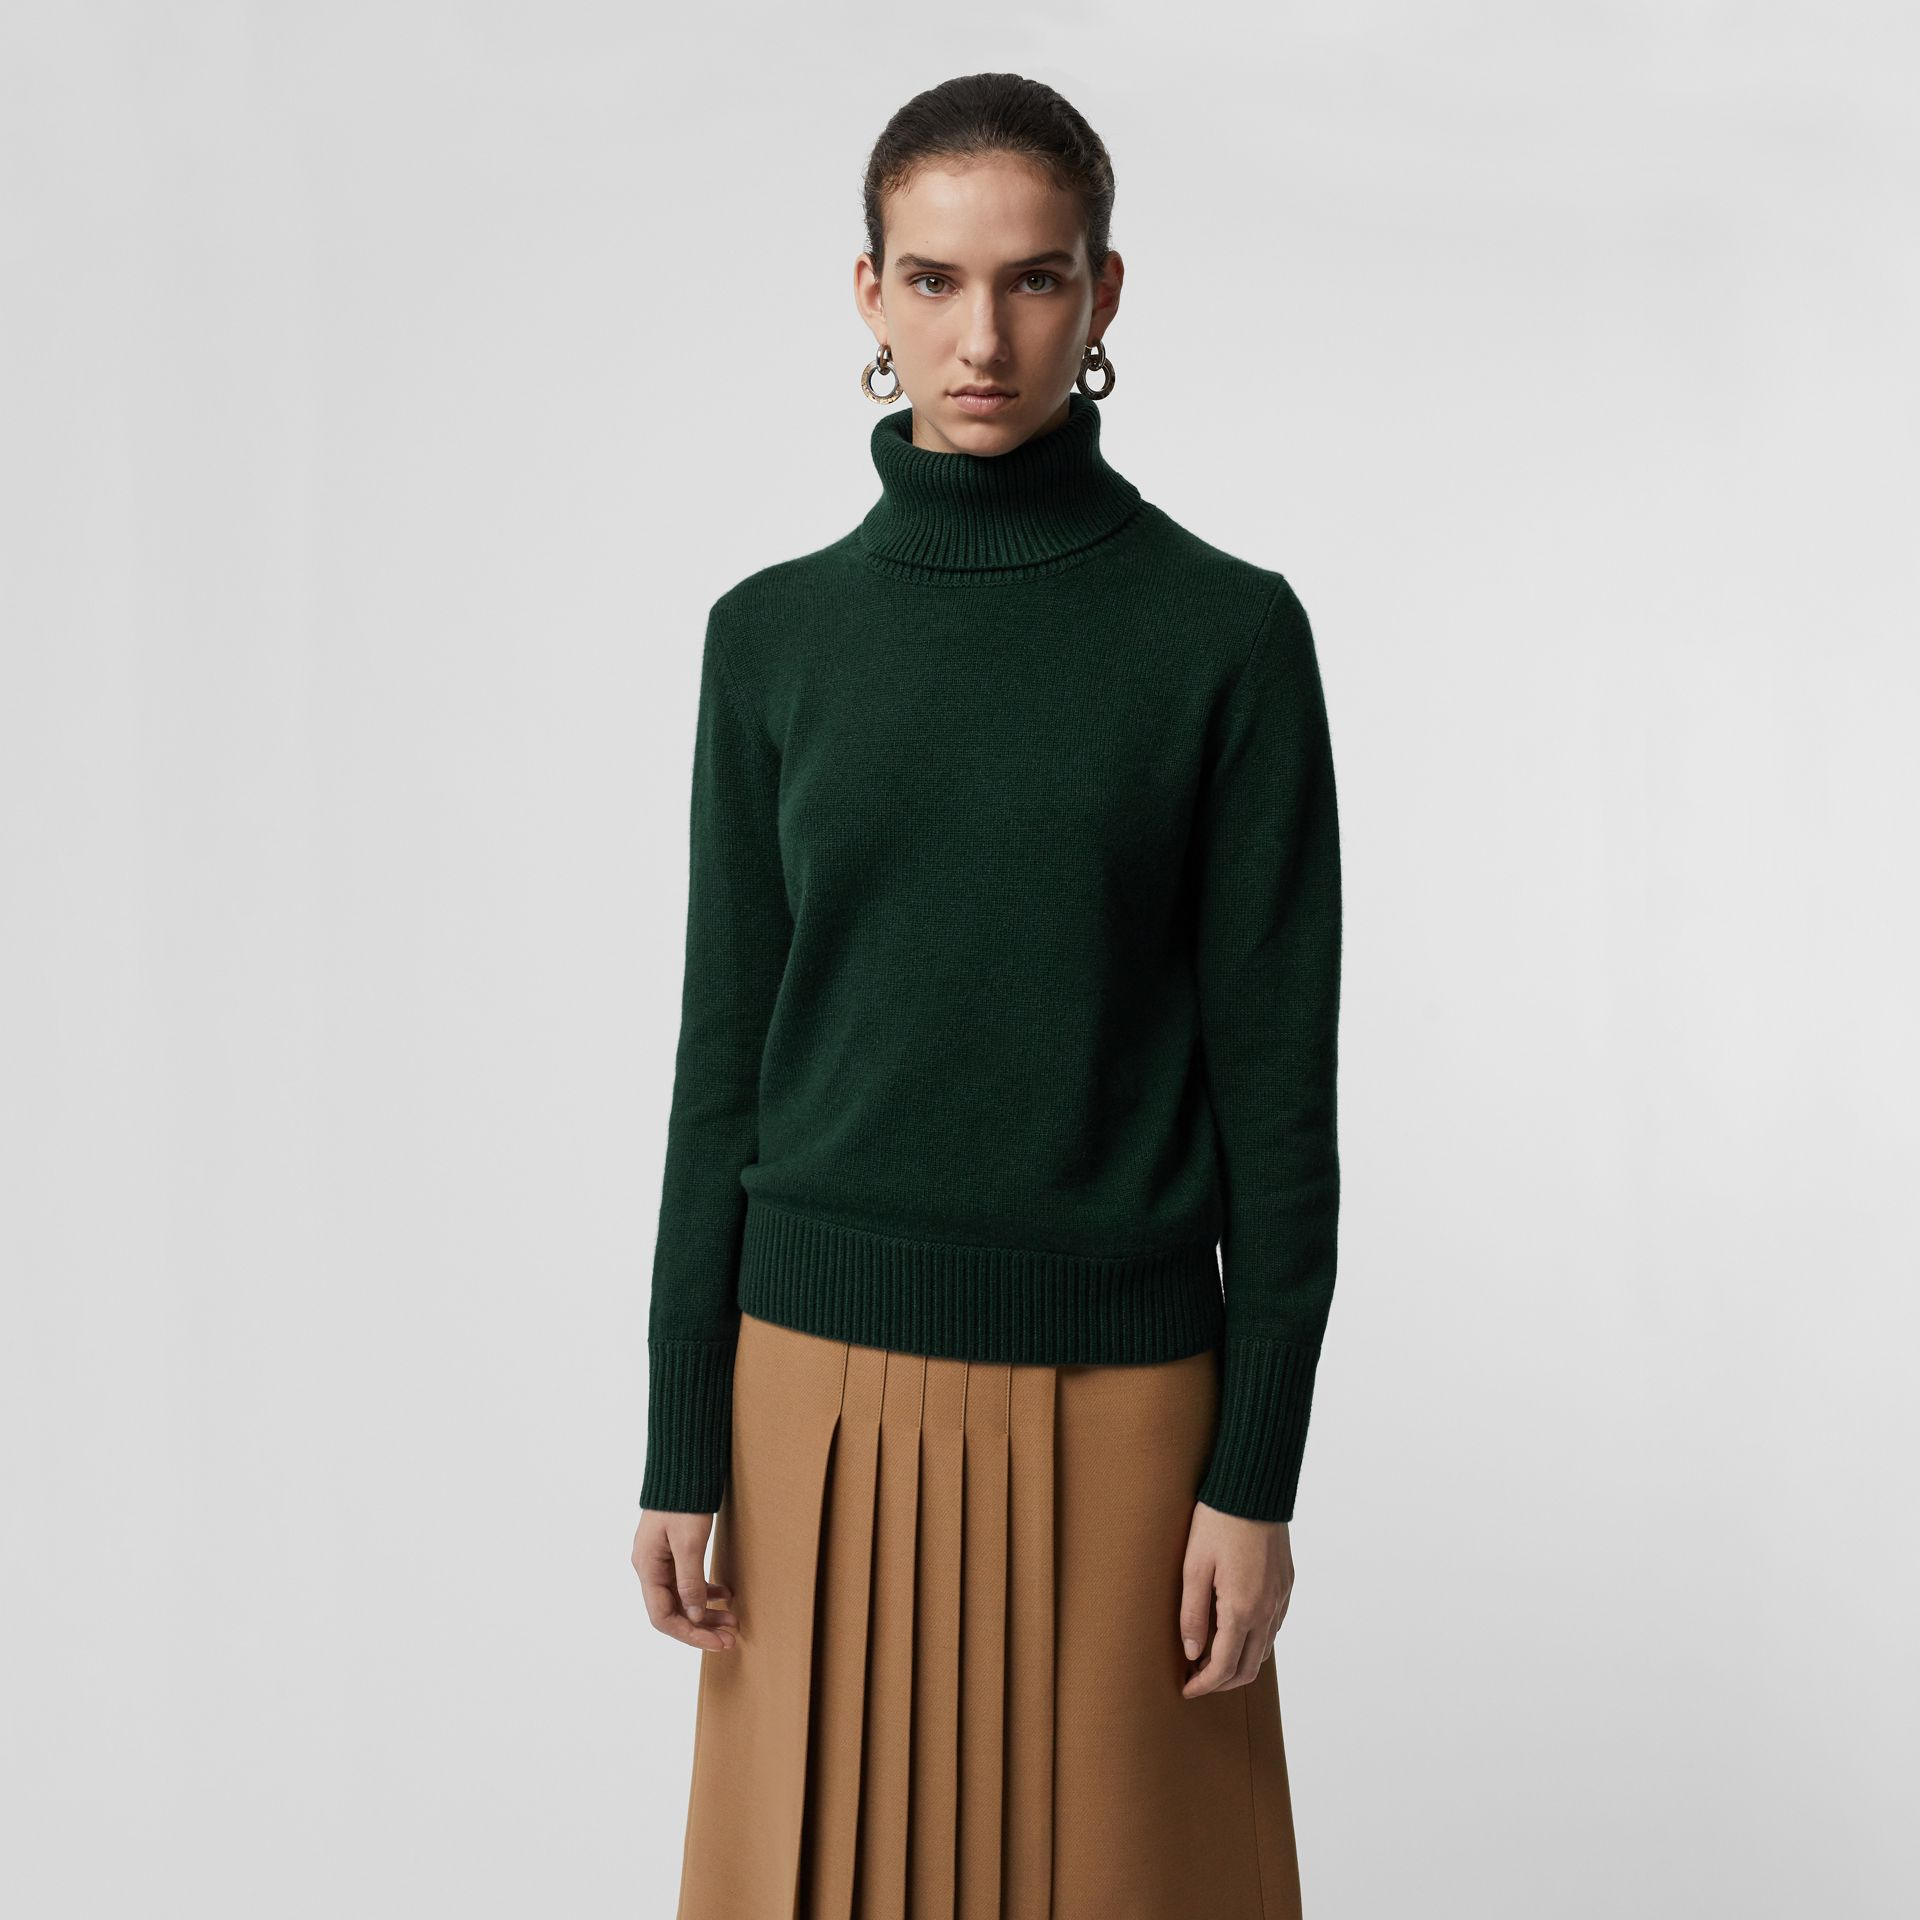 Embroidered Crest Cashmere Roll-neck Sweater in Dark Cedar Green - Women | Burberry - gallery image 4